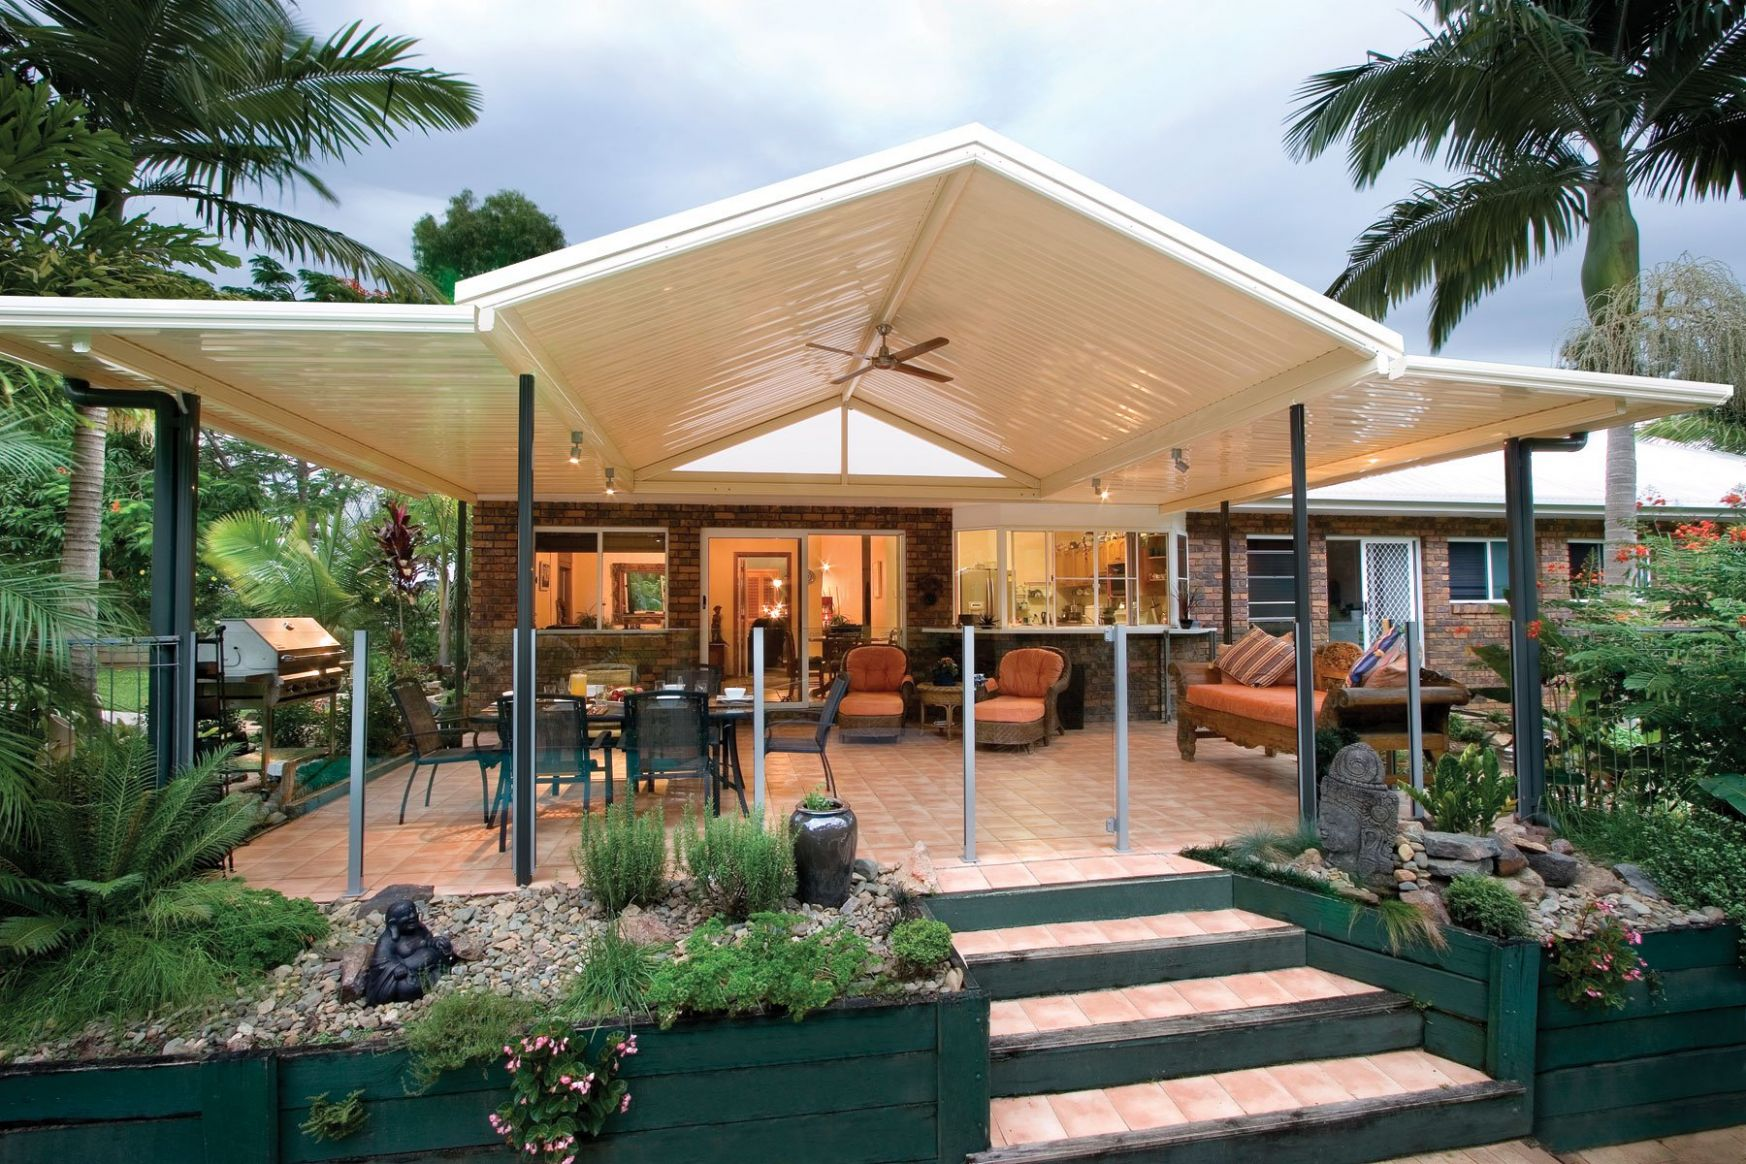 Pitched Covered Extended Patio Outback Patios Verandah Carport ..